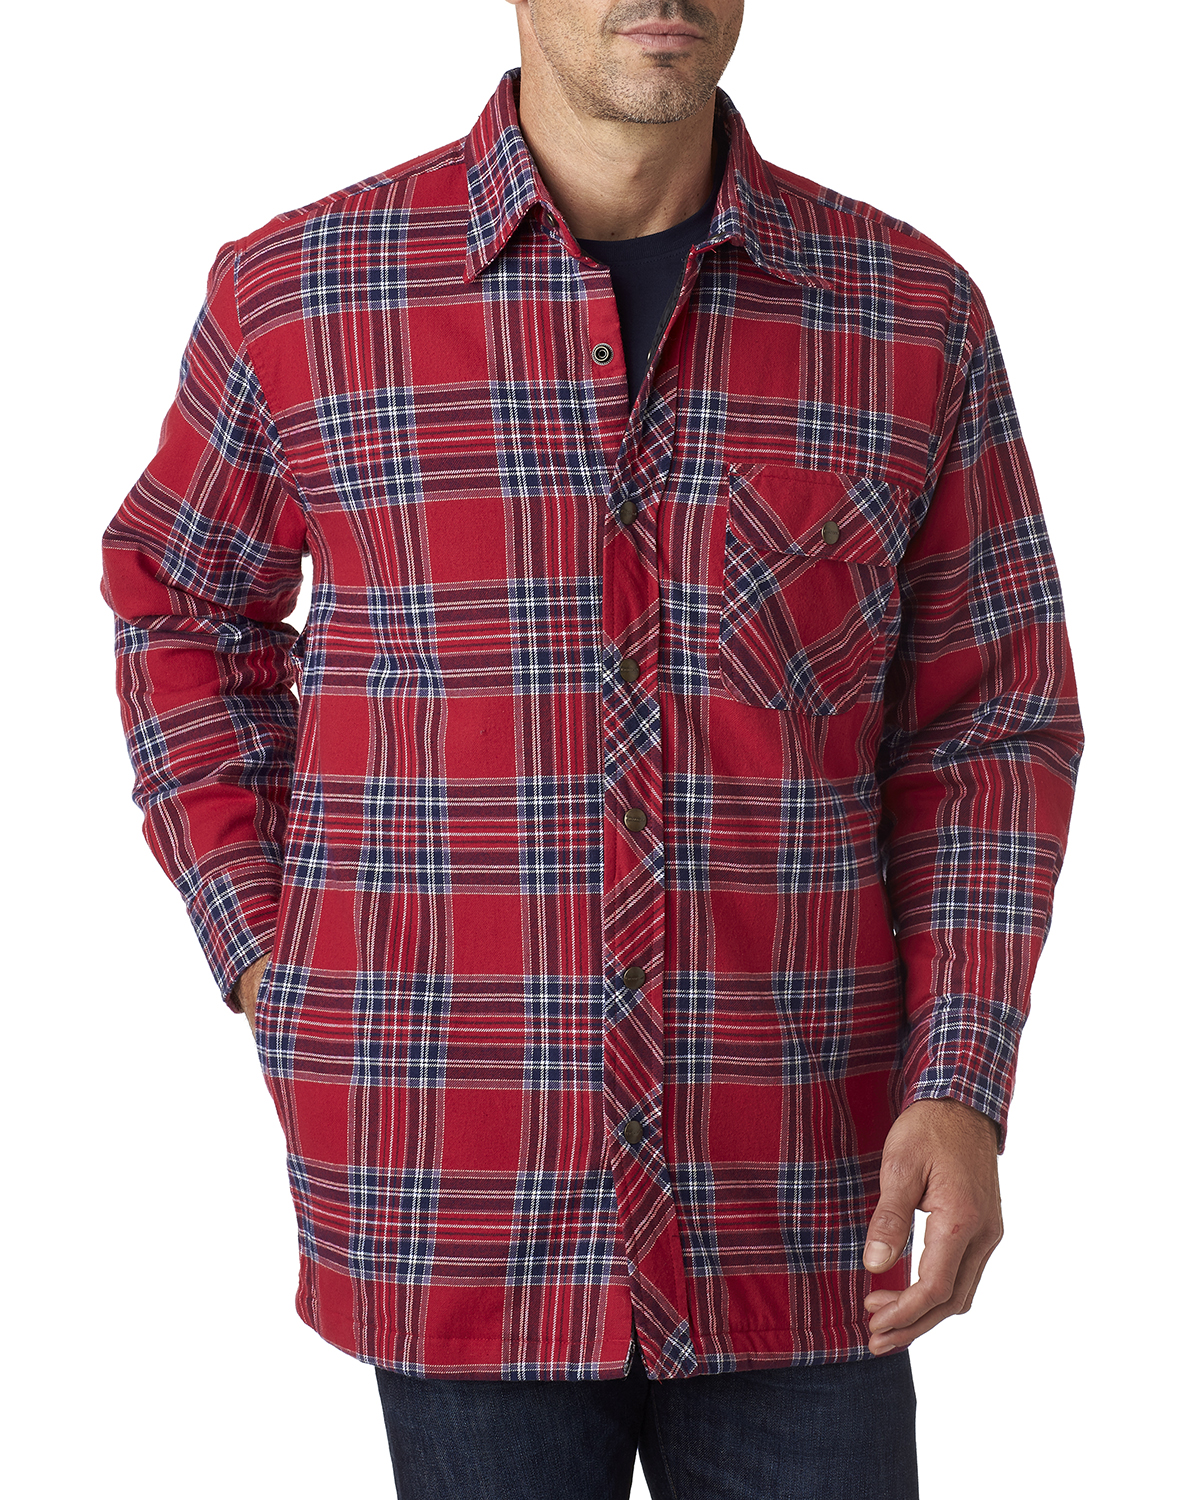 Backpacker BP7002 - Men's Flannel Shirt Jacket with Quilt Lining ... : quilted flannel shirts - Adamdwight.com